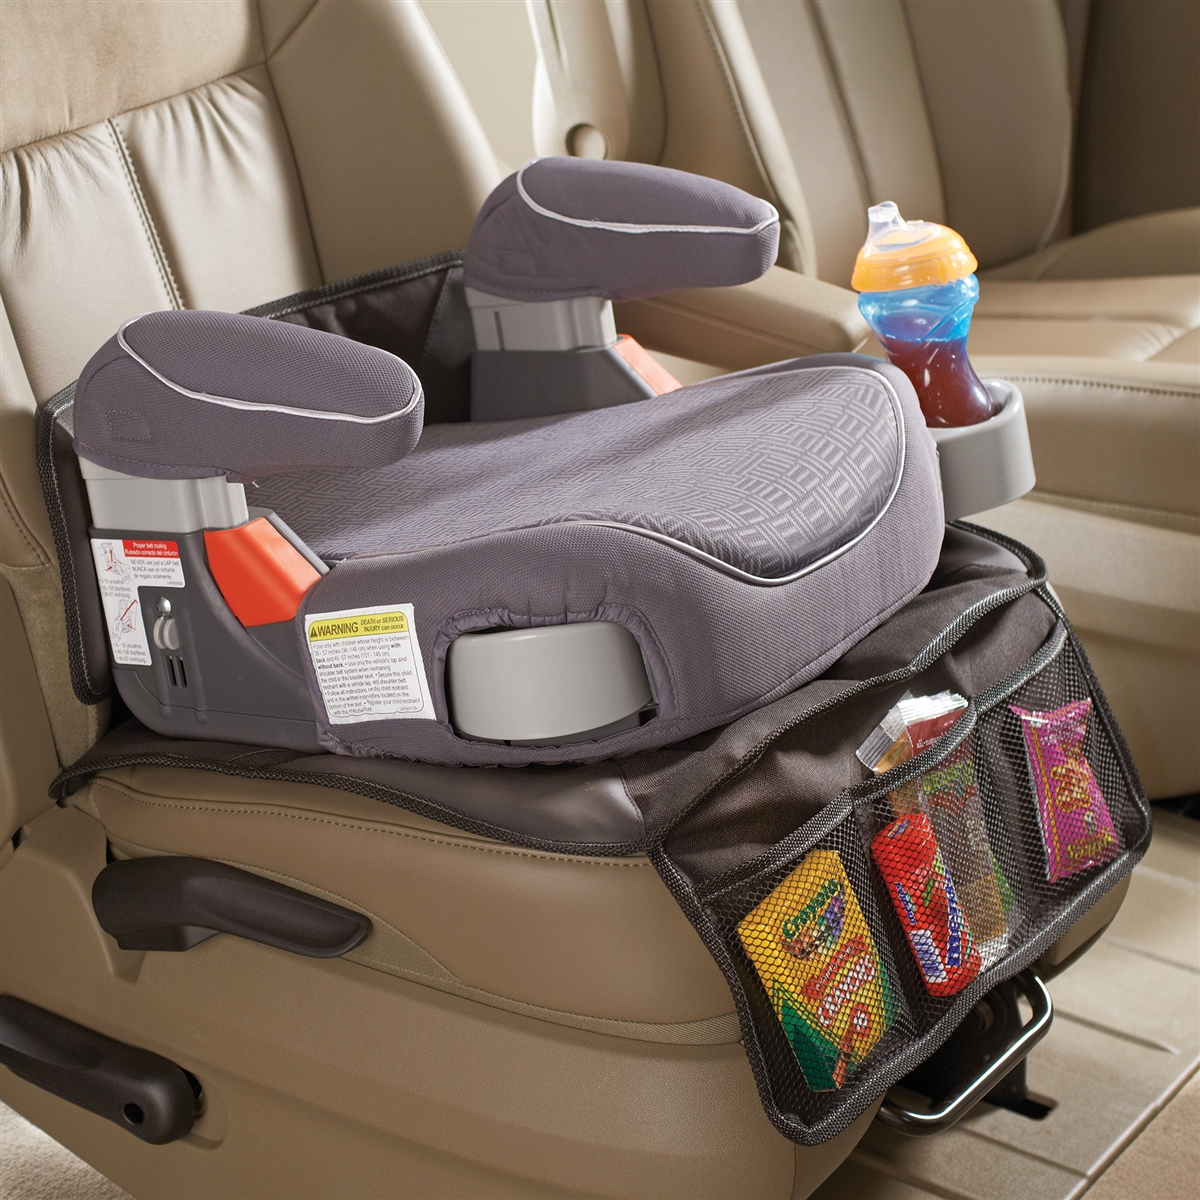 high road car seat protector mat for kids booster seats and child safety seats. Black Bedroom Furniture Sets. Home Design Ideas